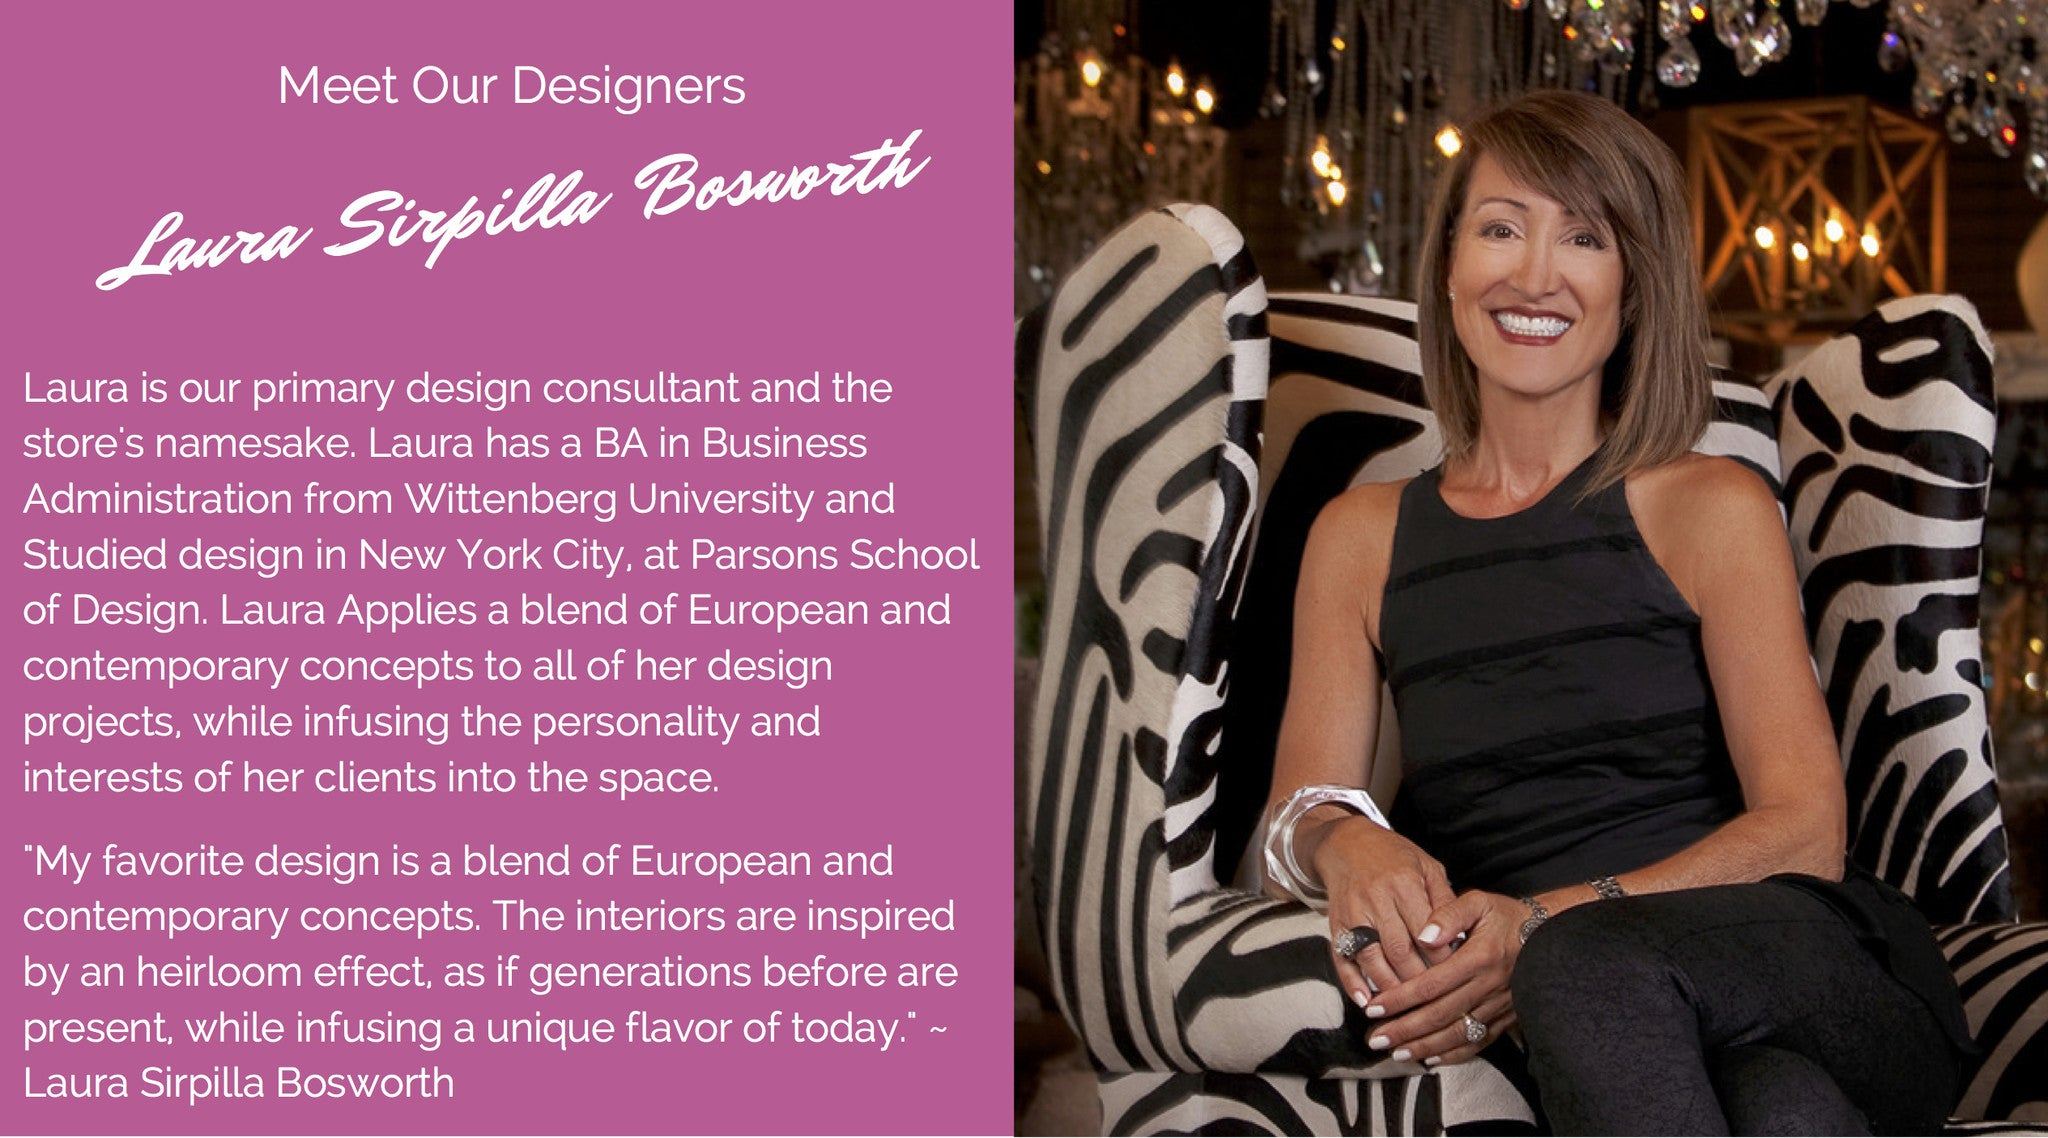 Meet the Designers: Laura